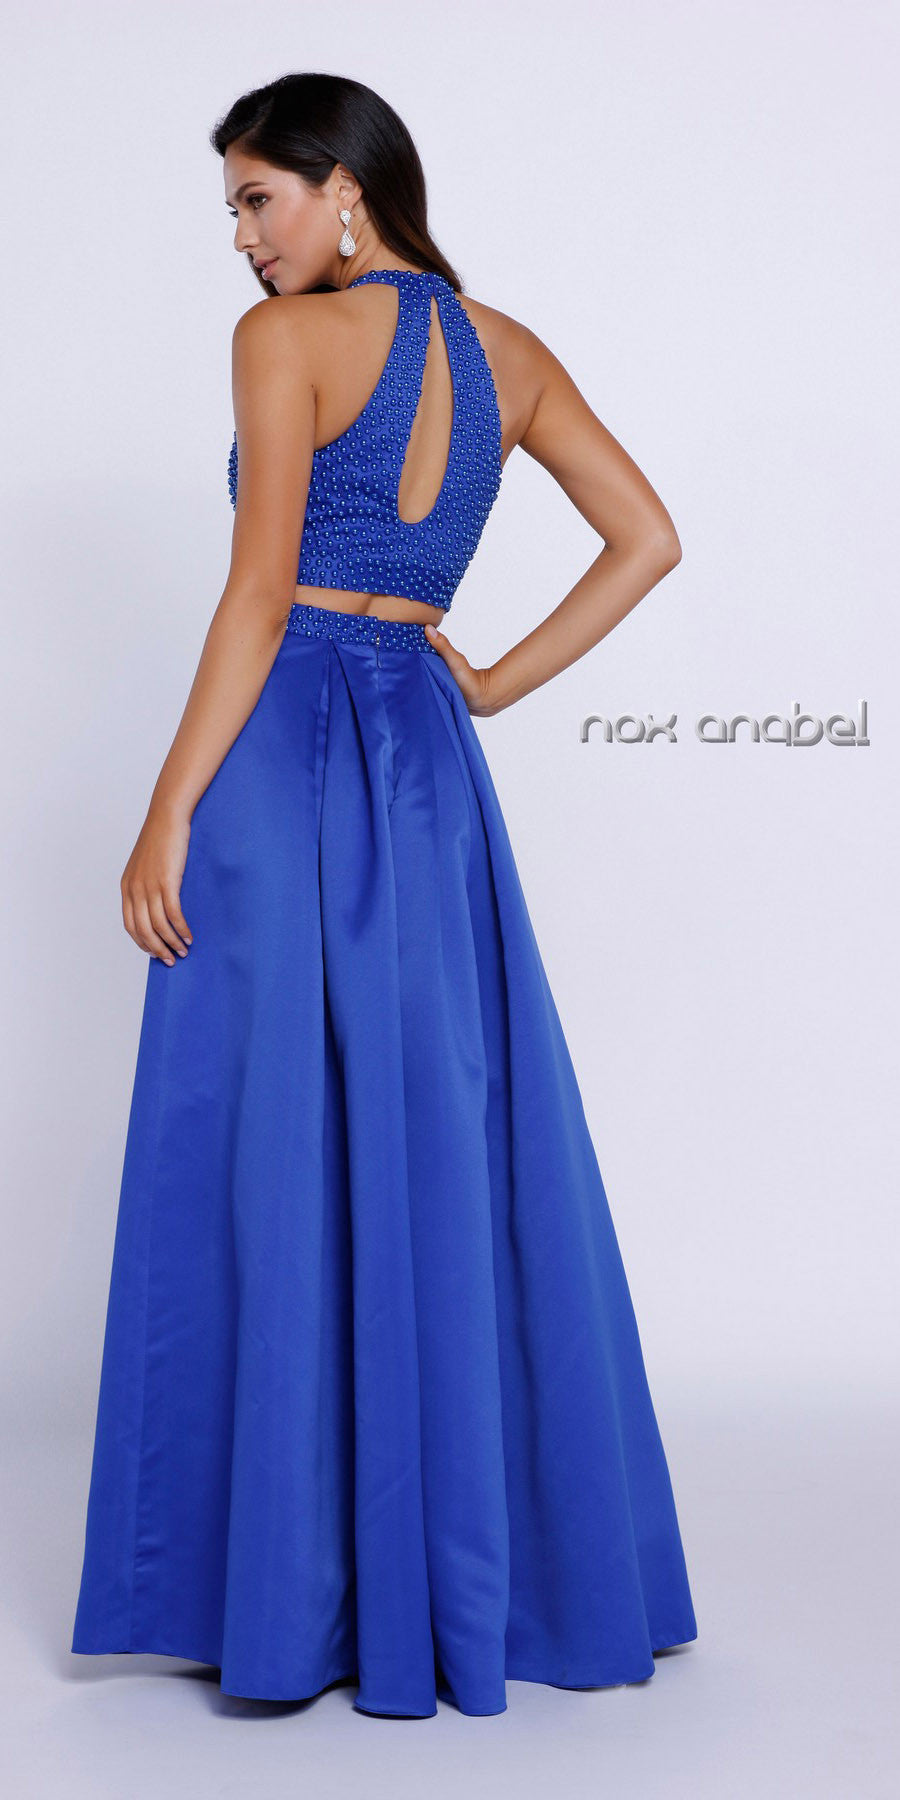 Royal Blue Halter Two-Piece Pleated Satin Skirt Prom Dress Long Back View